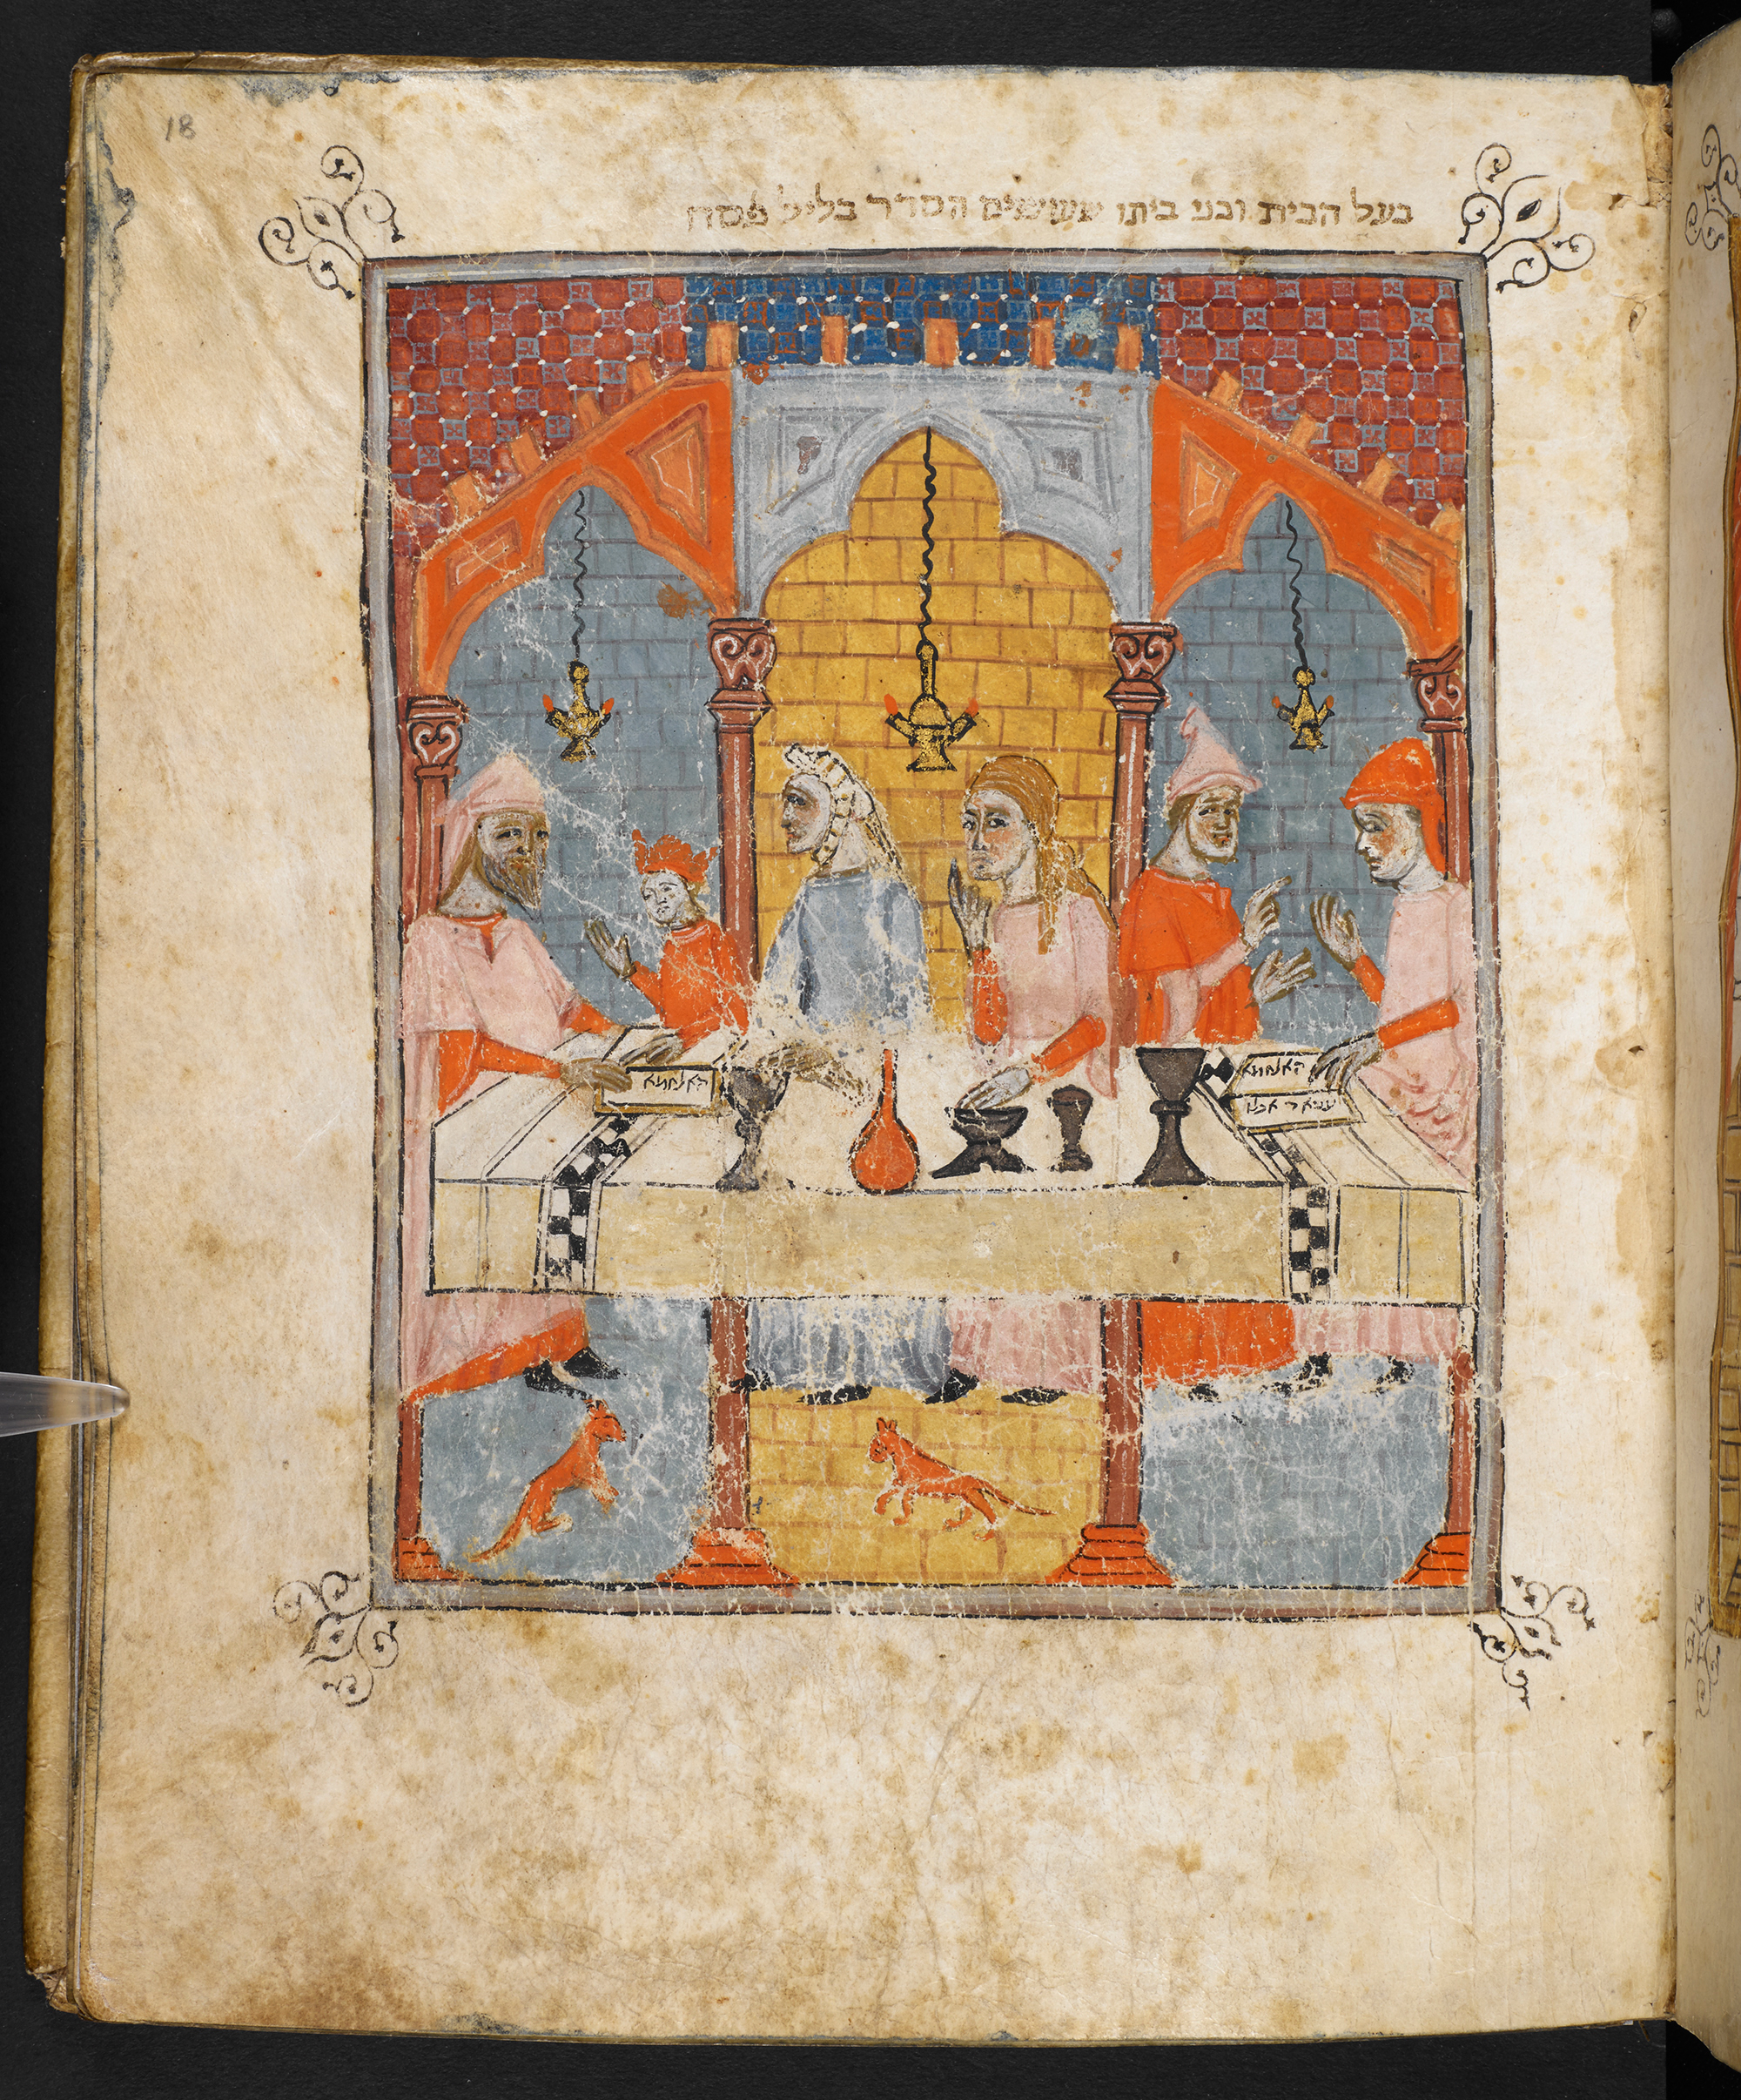 The Seder, The Sister Hagadah: Haggadah for Passover, Or 2884, Hebrew Manuscripts Digitisation Project, British Library